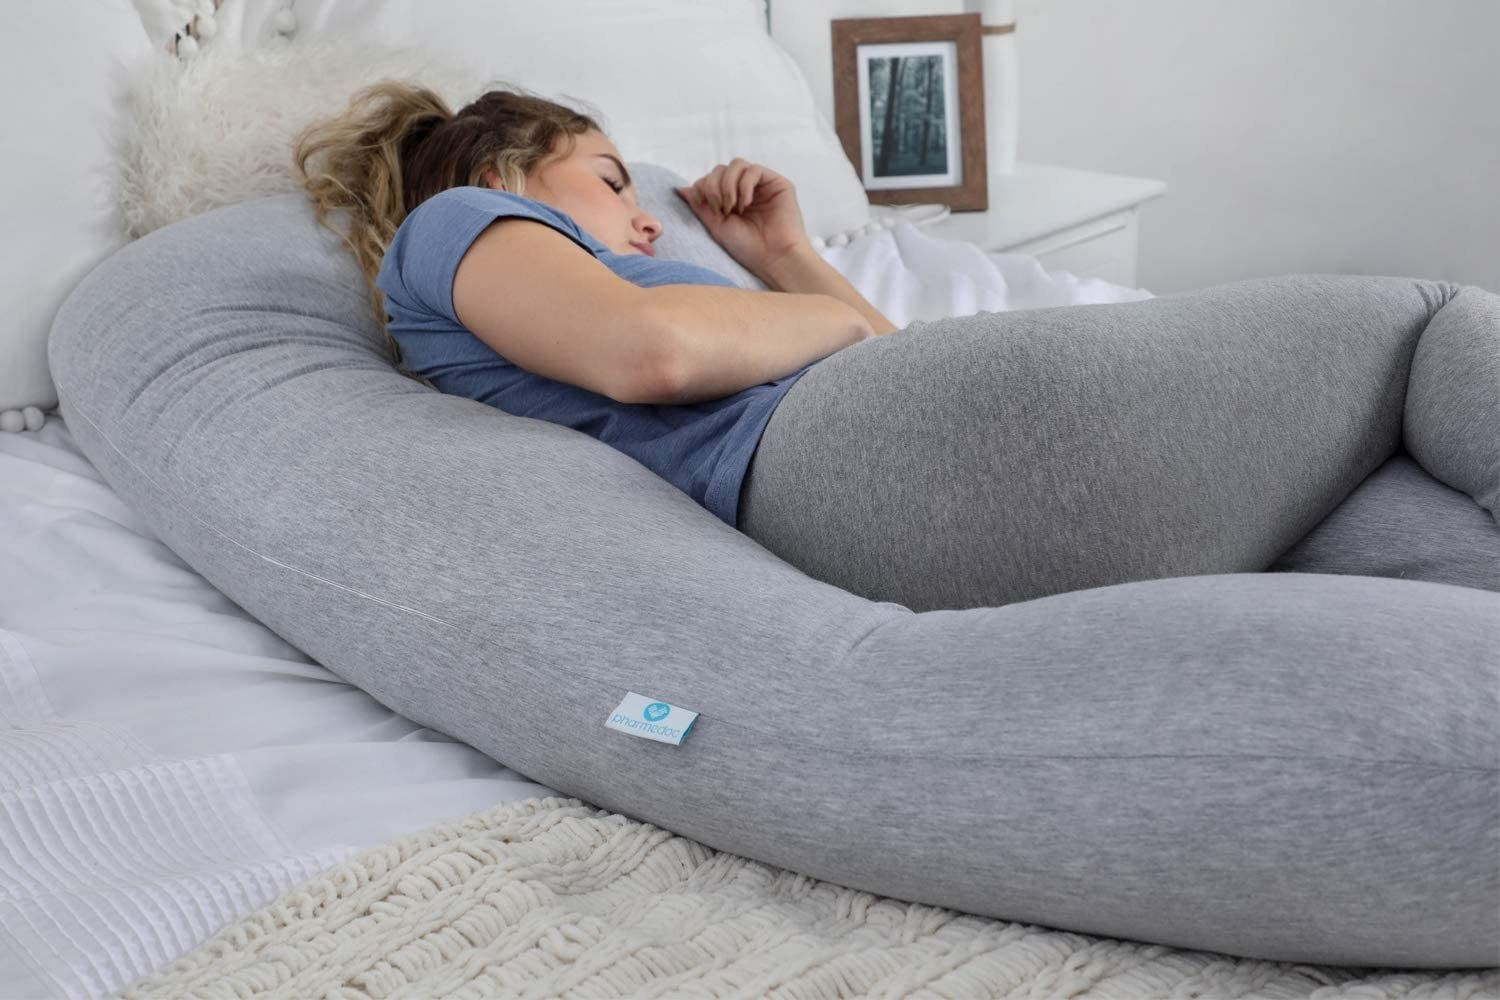 A person sleeping on their side with a long U-shaped pillow around them